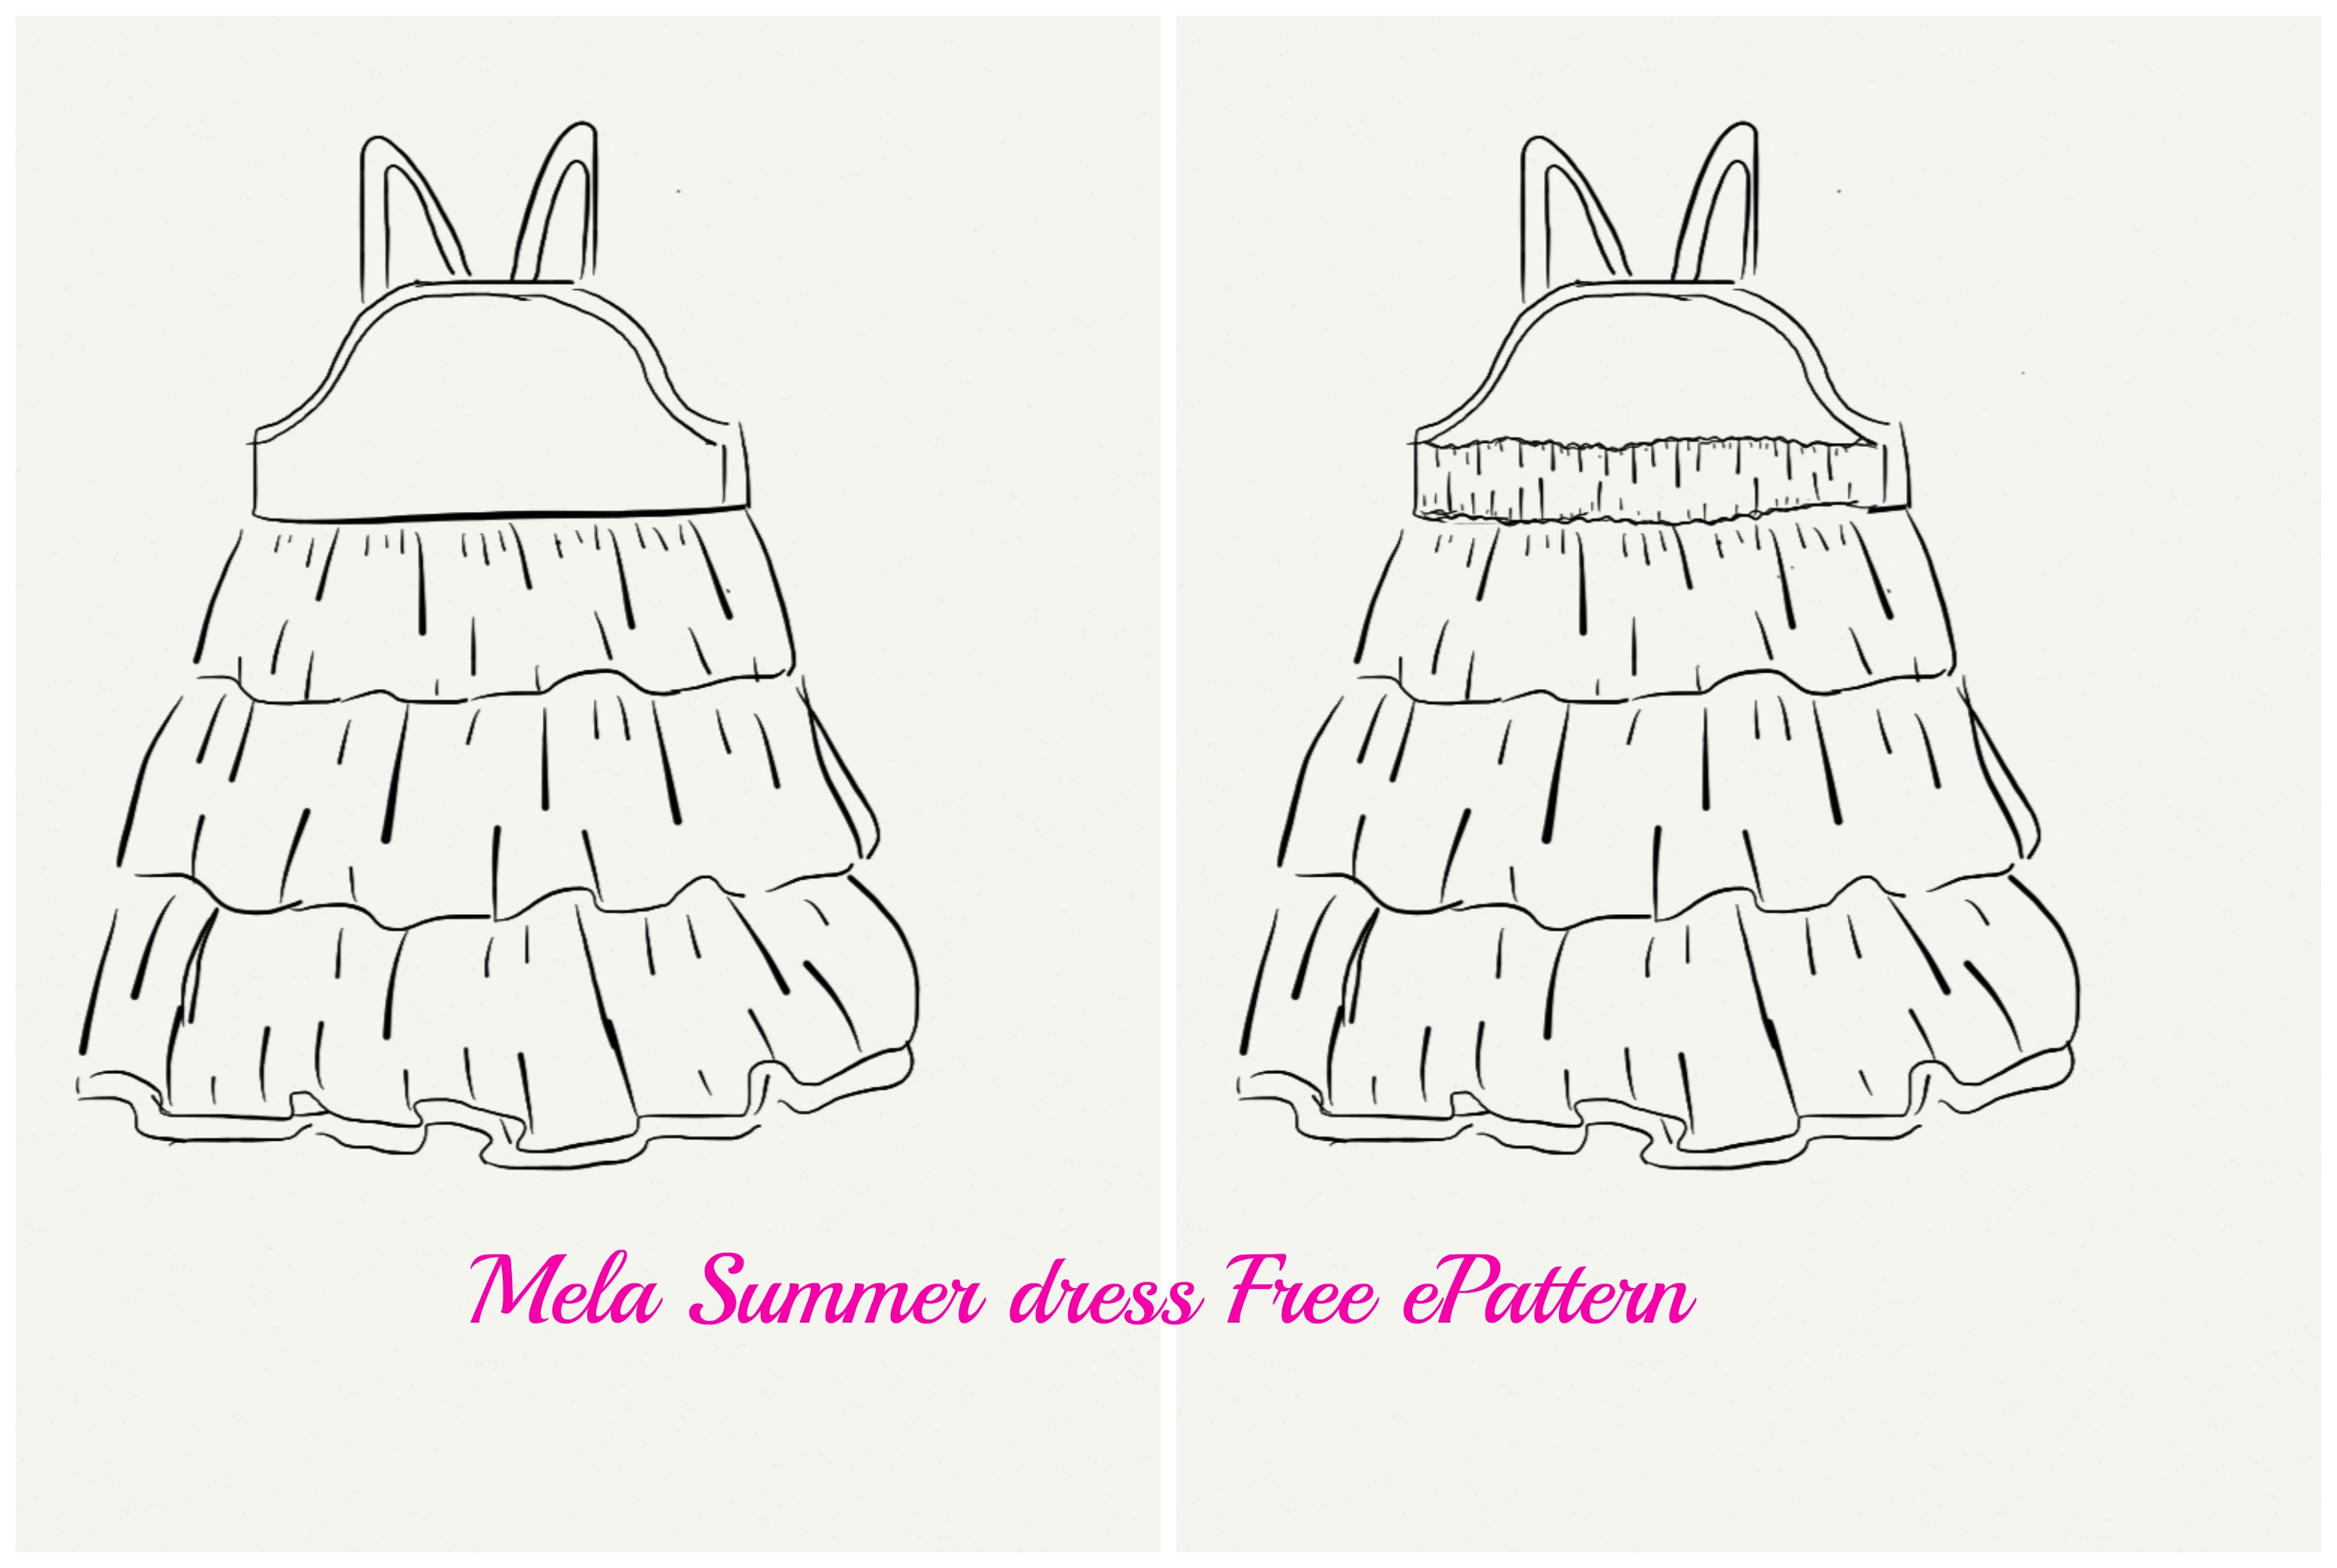 Mela Summer Dress Free E-Pattern